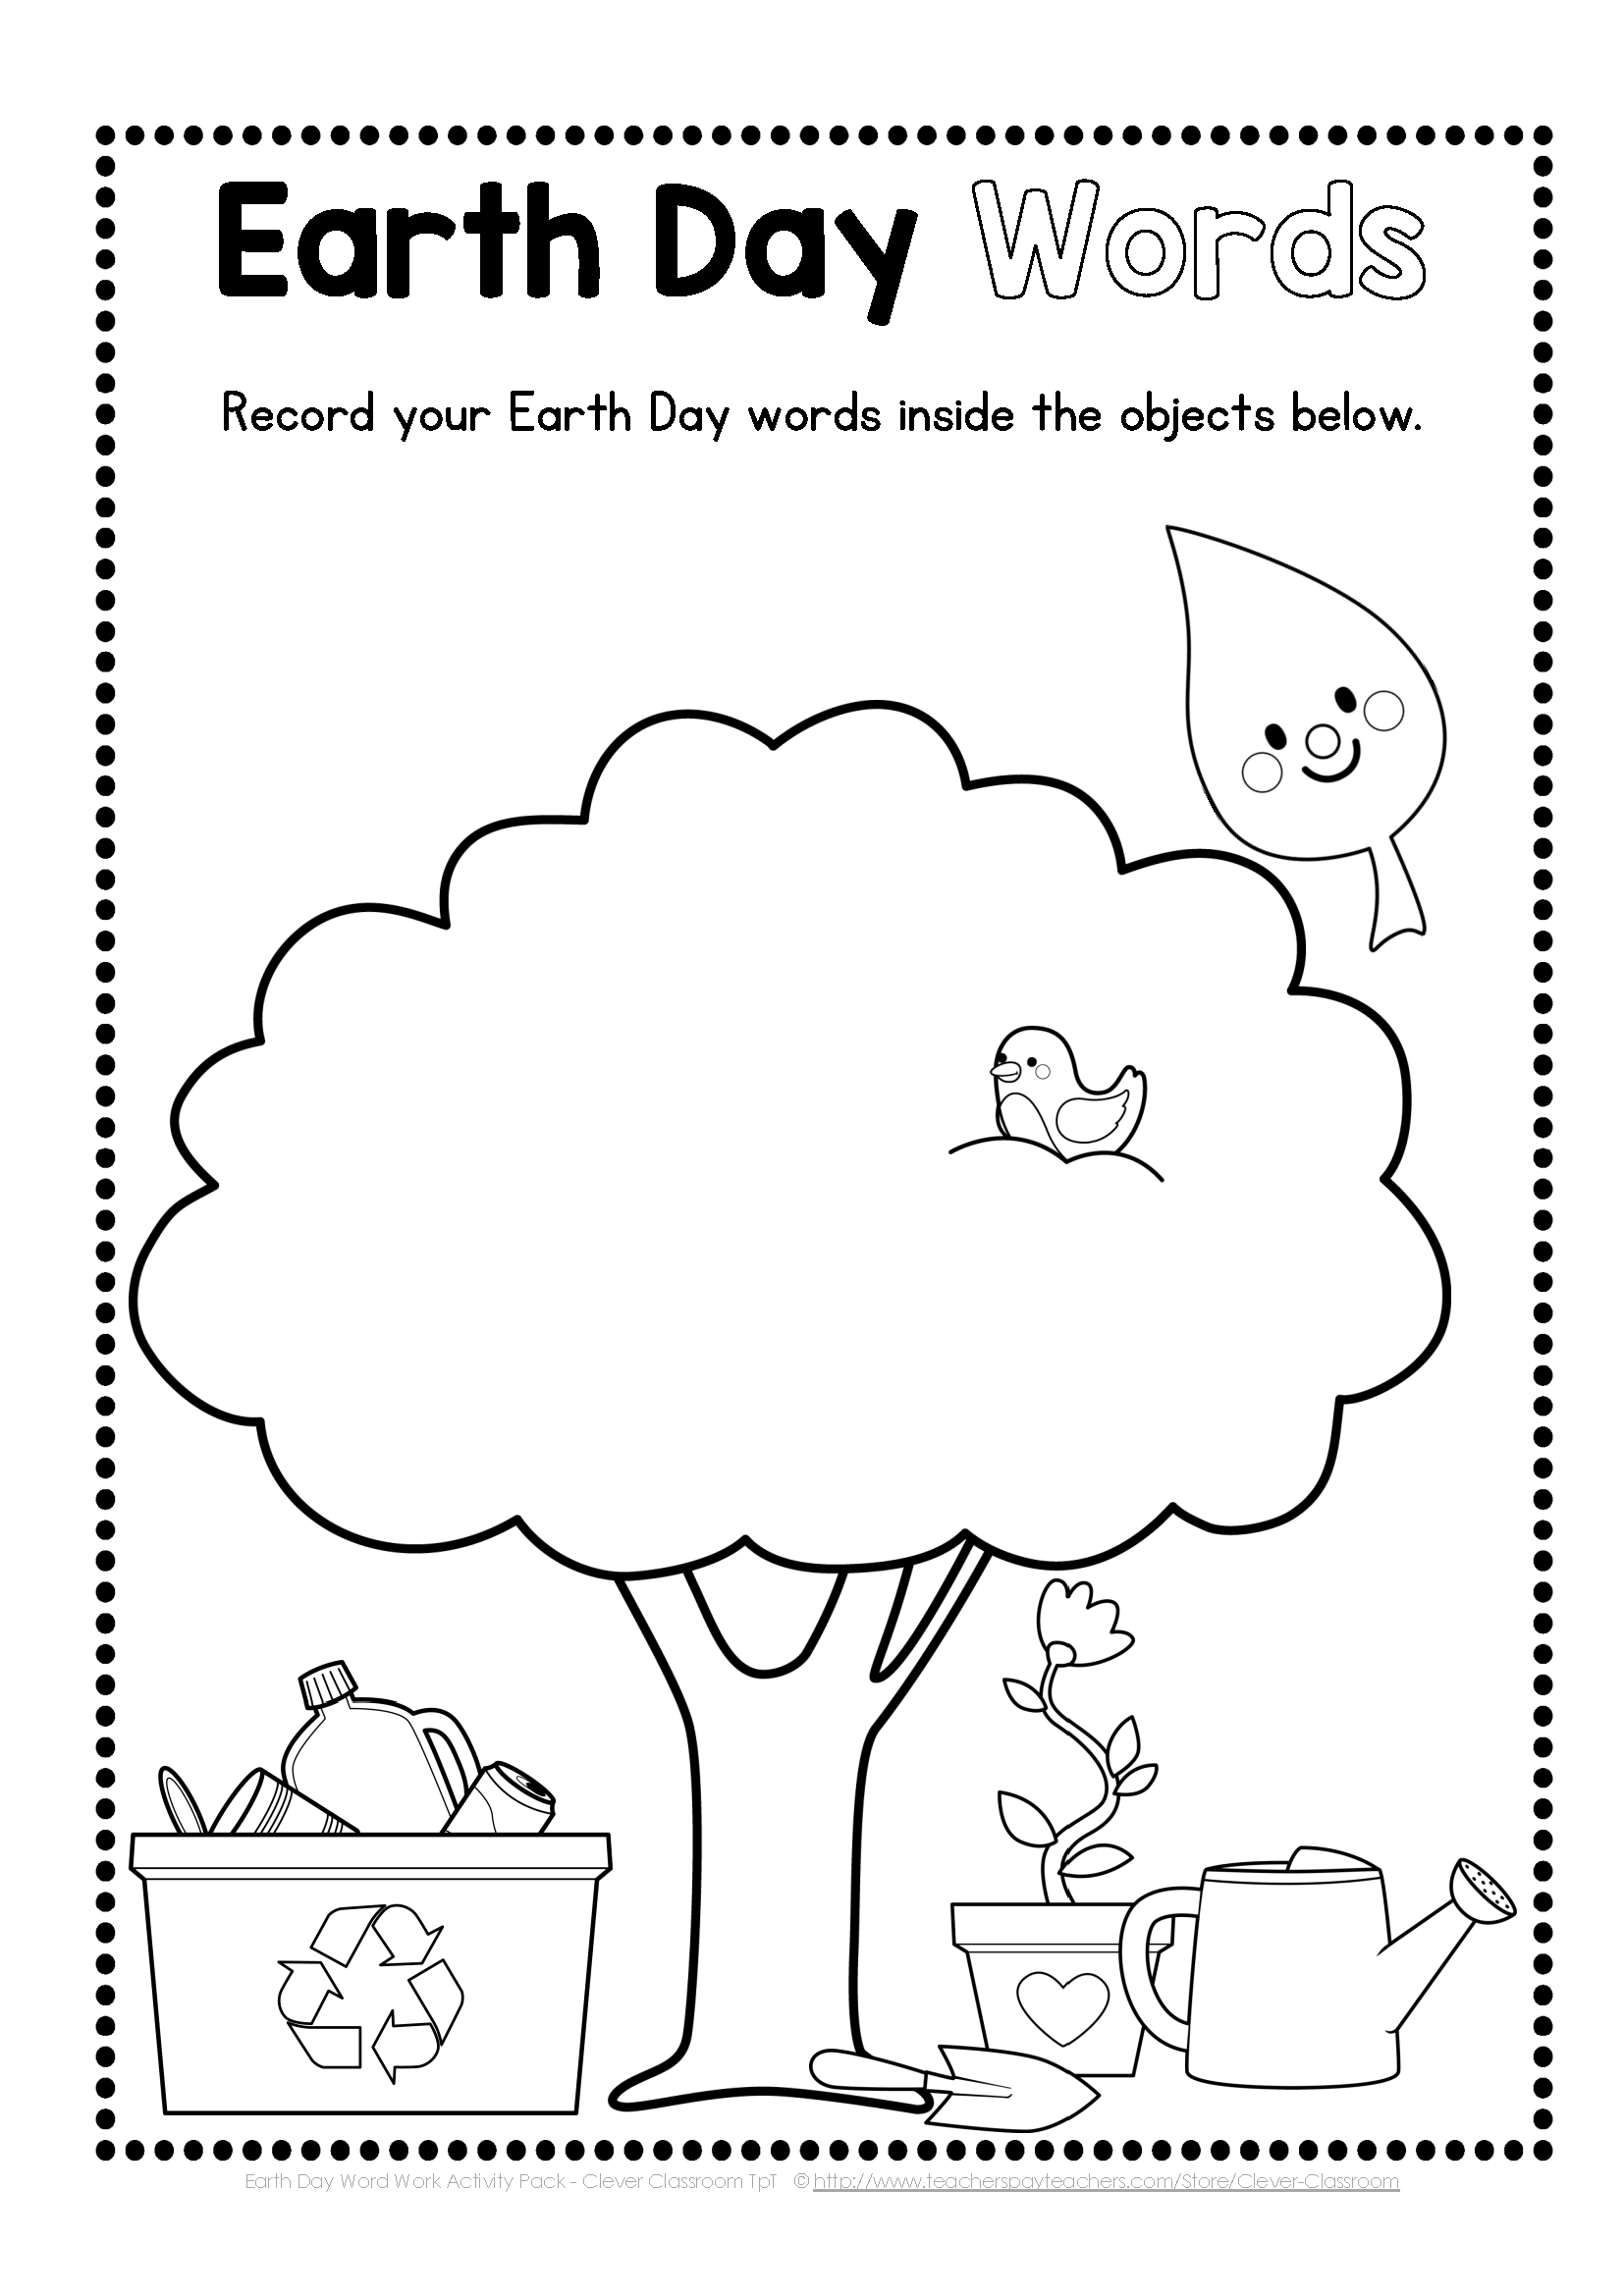 Earth Day Word Work Pack